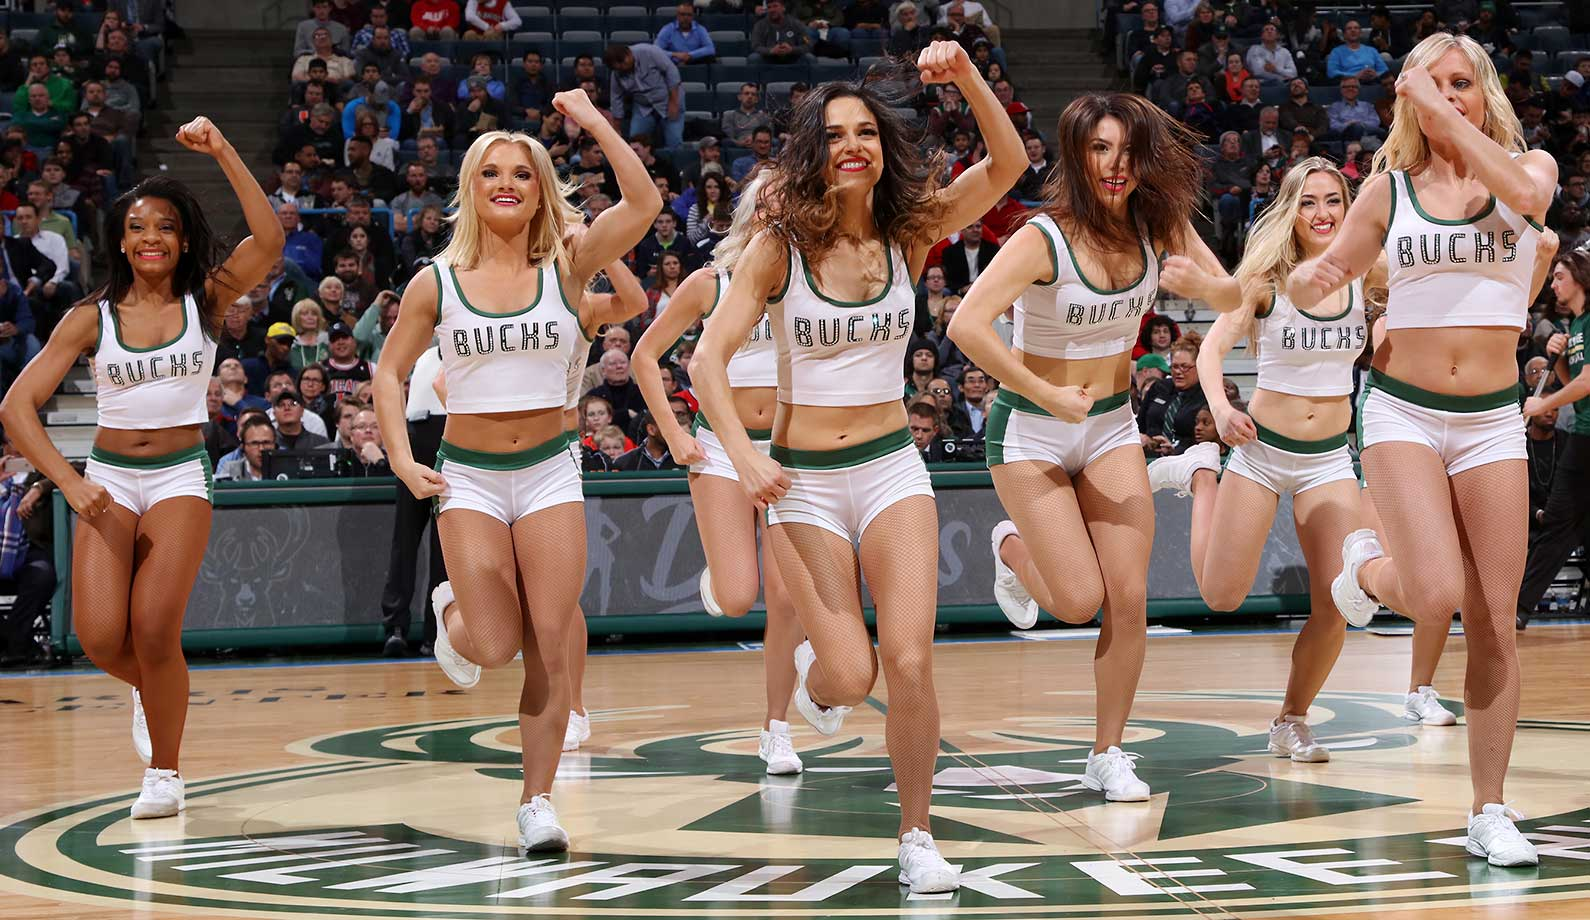 The Milwaukee Bucks dance team performs during the game against the Washington Wizards.